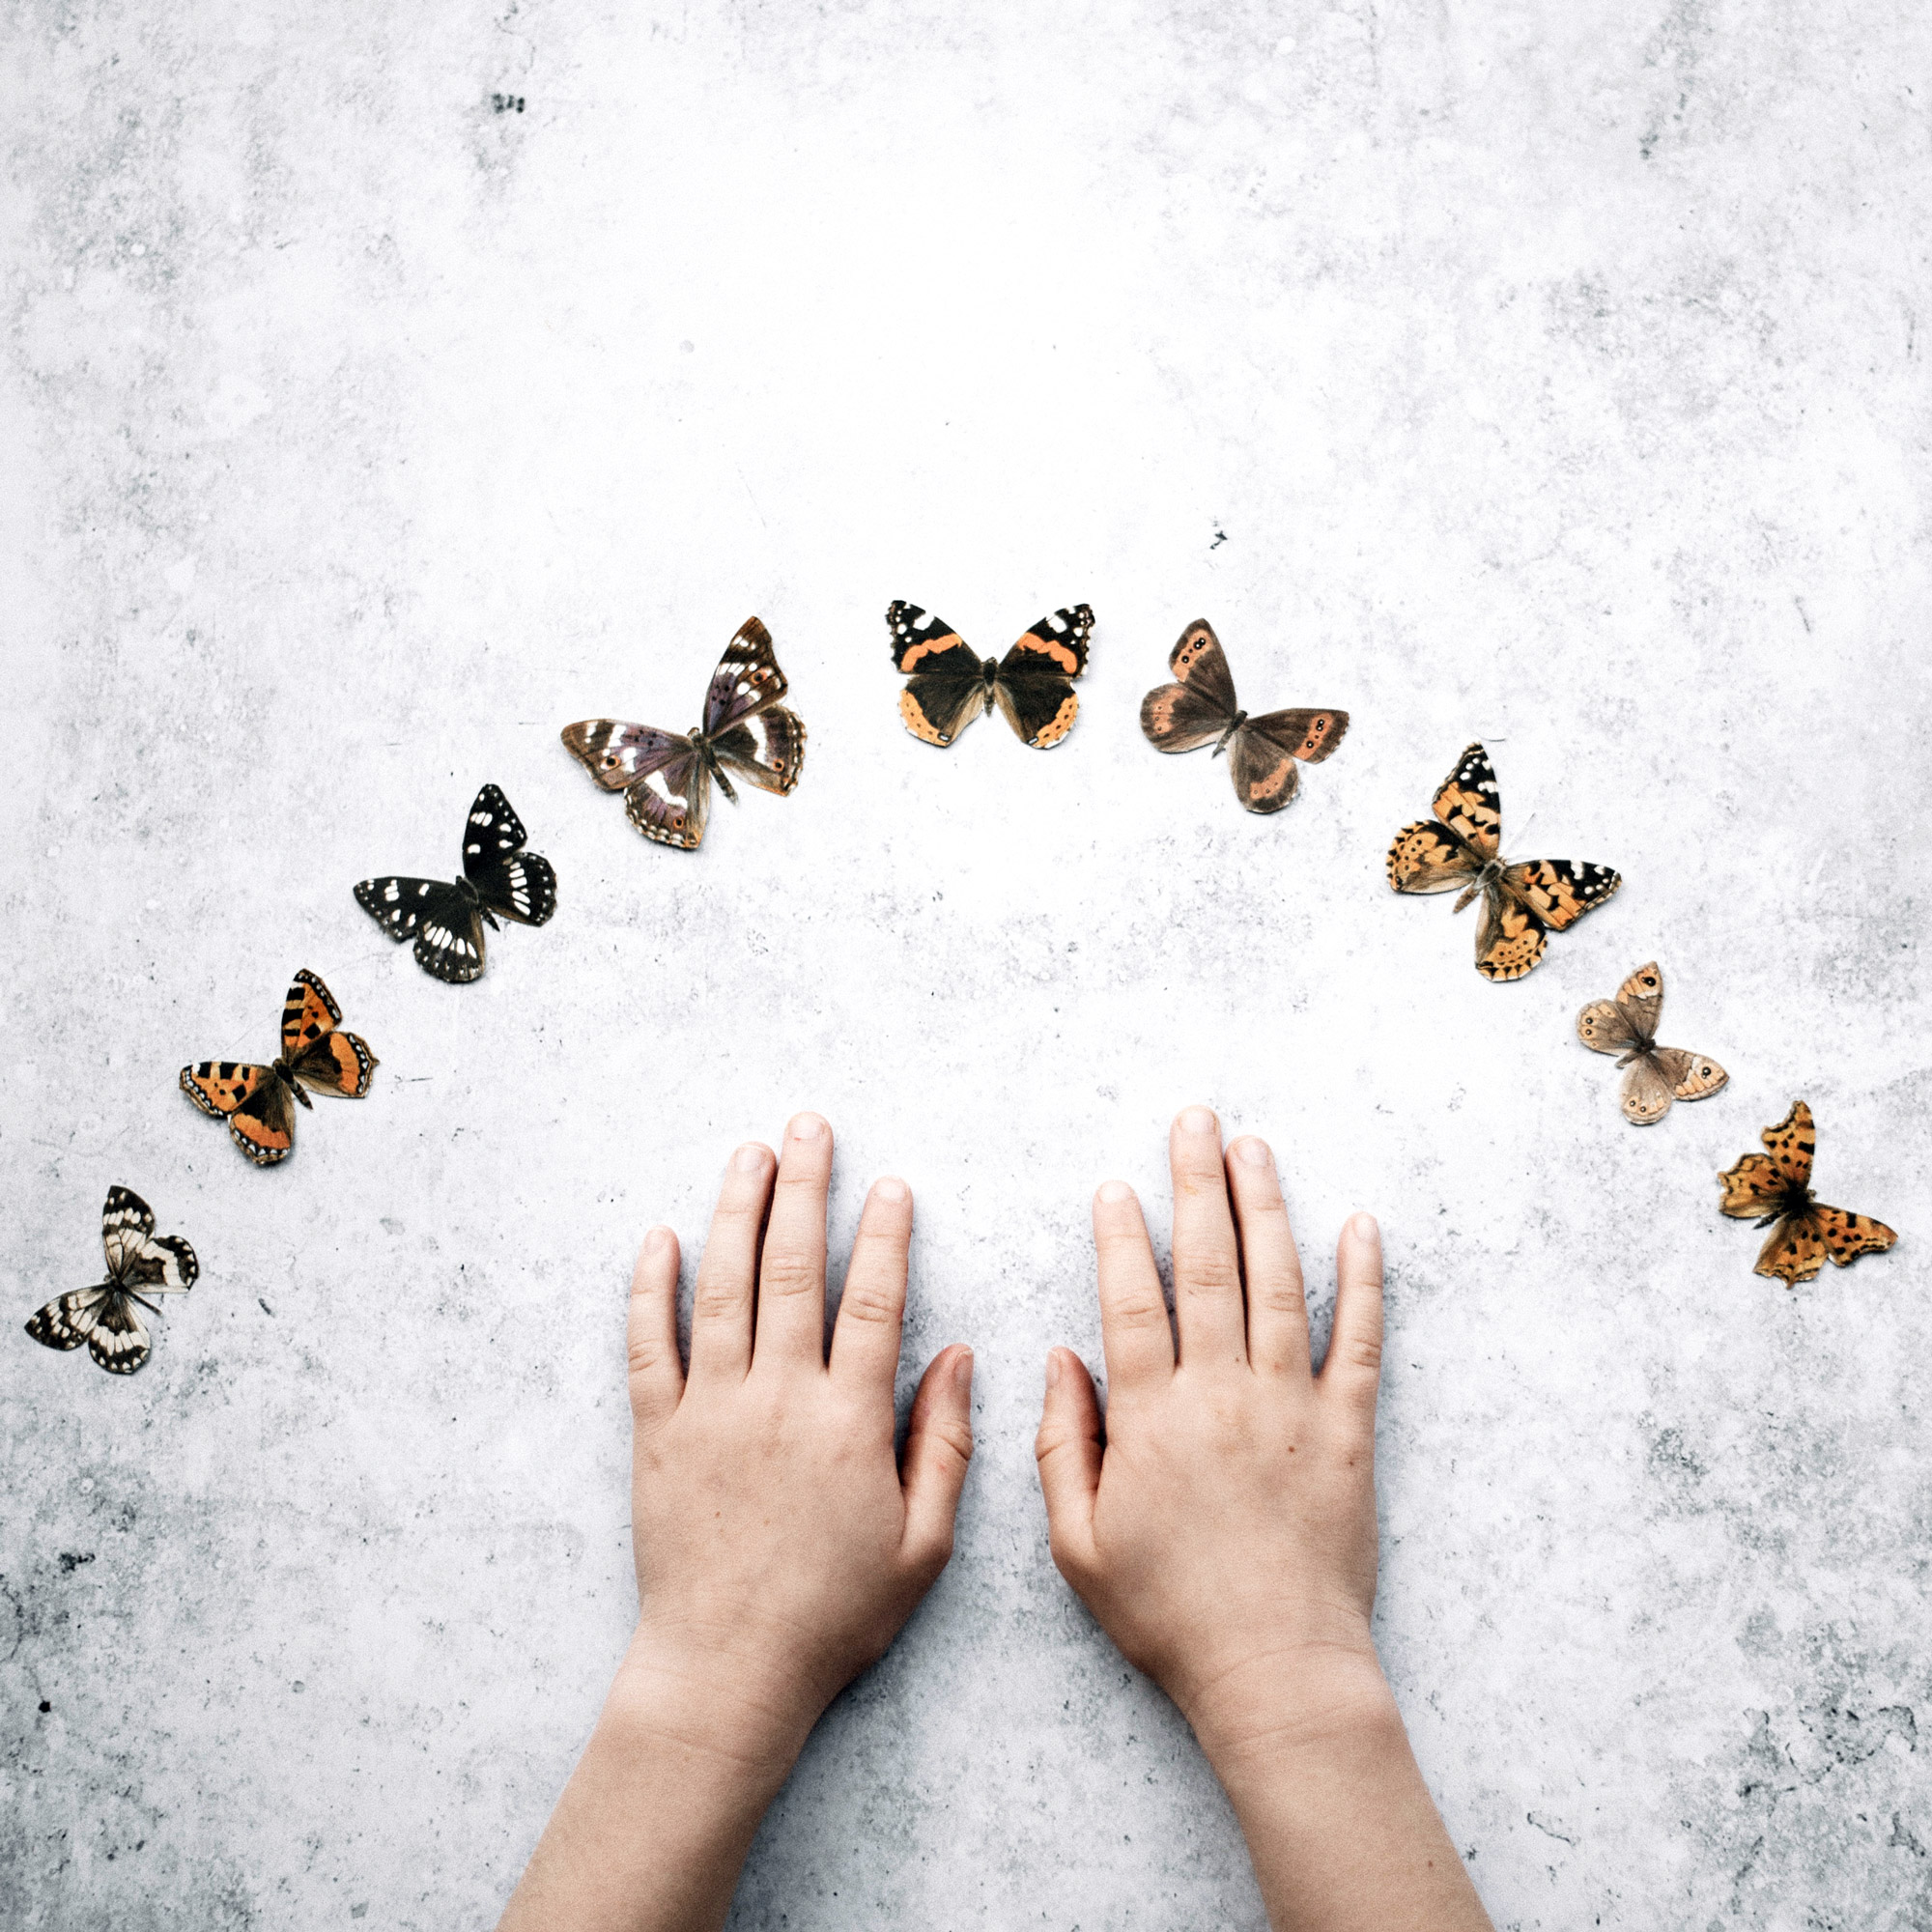 From egg, to caterpillar, to pupa, to butterfly. There should be a beautiful transformation!